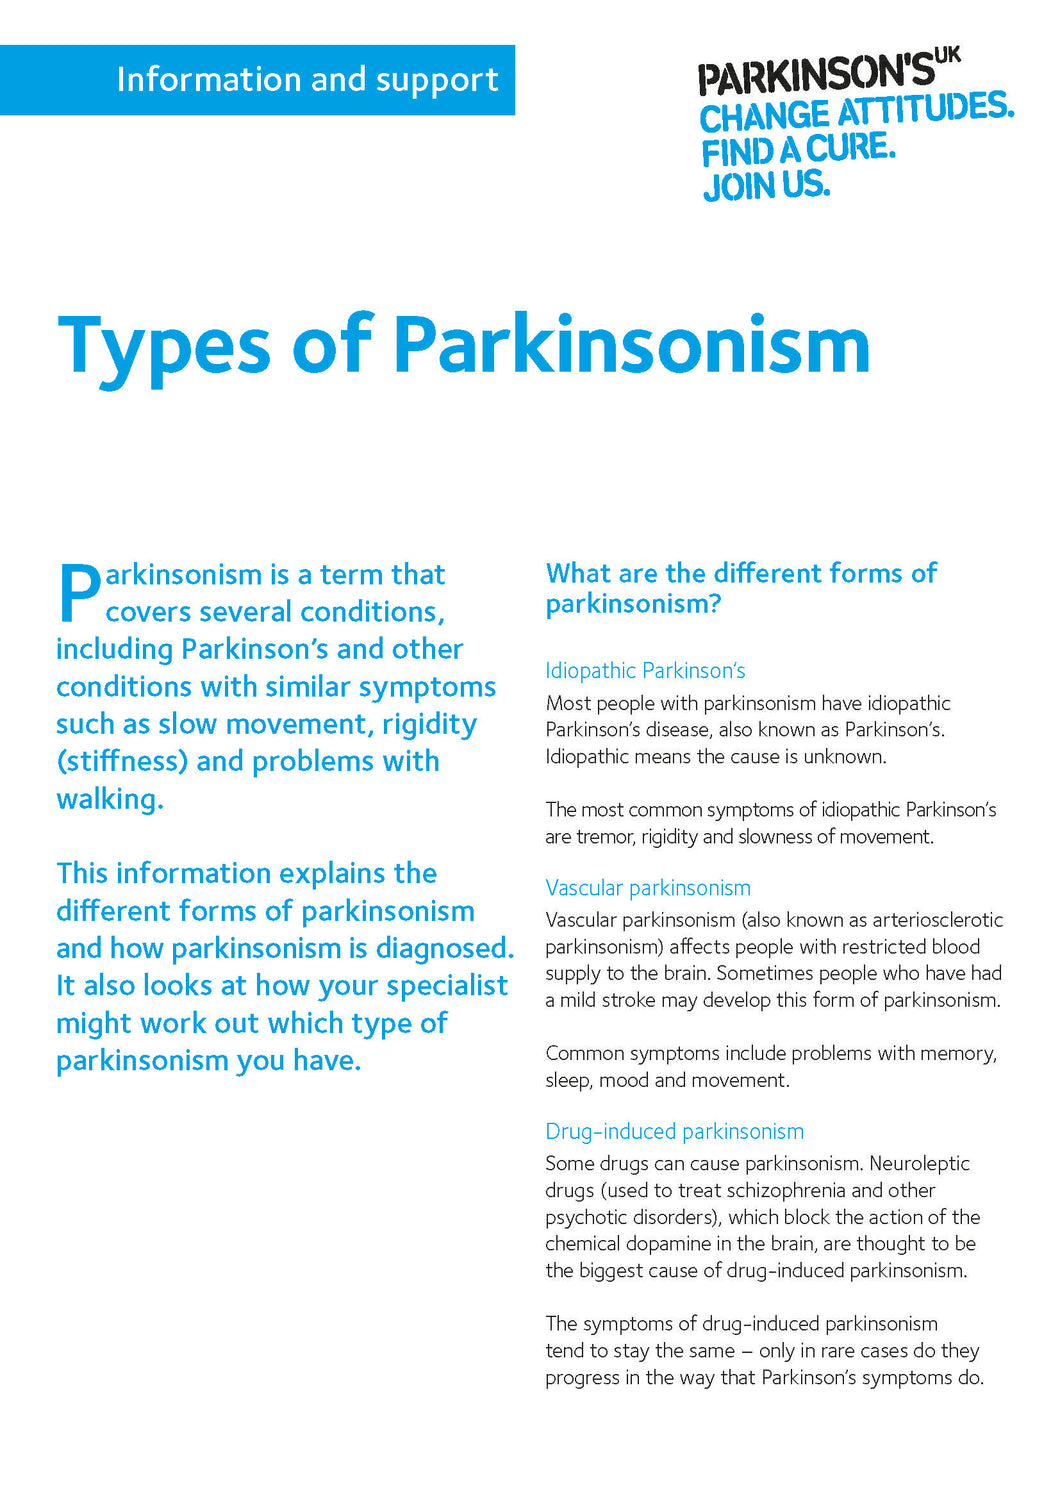 Types of Parkinsonism